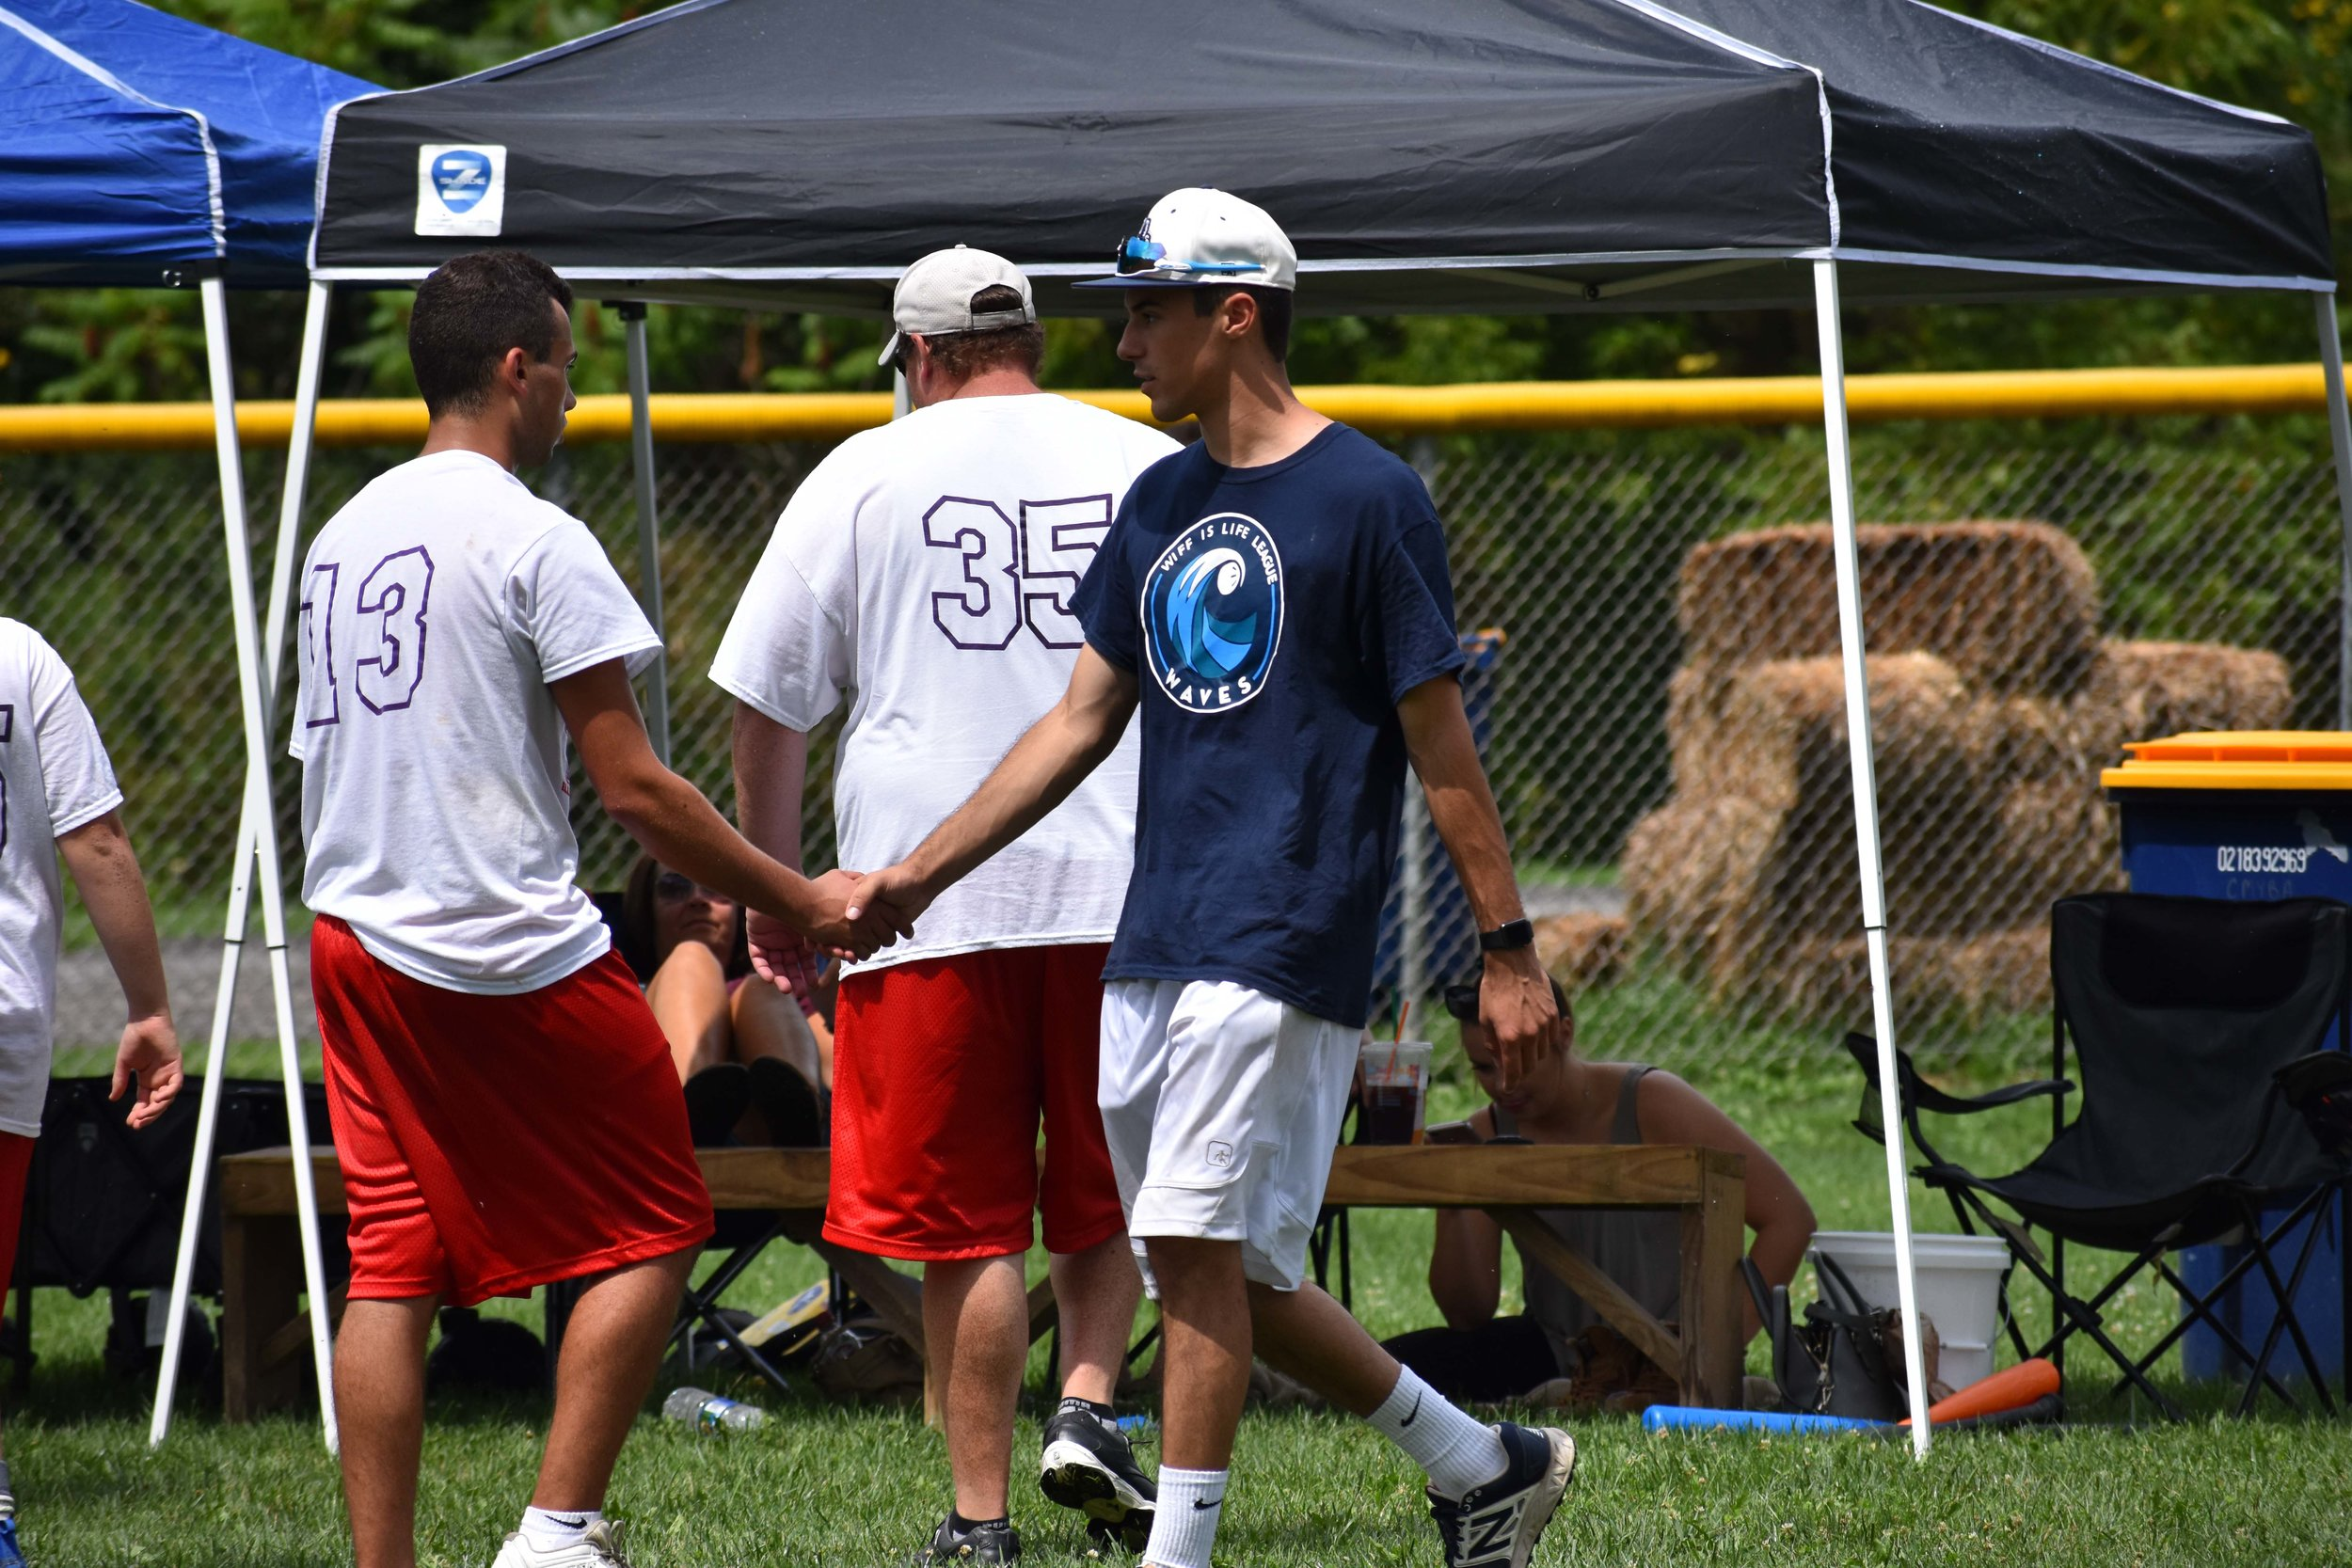 Gino Joseph (Left) and Austin Berger (Right) shake hands following the 3rd place game.